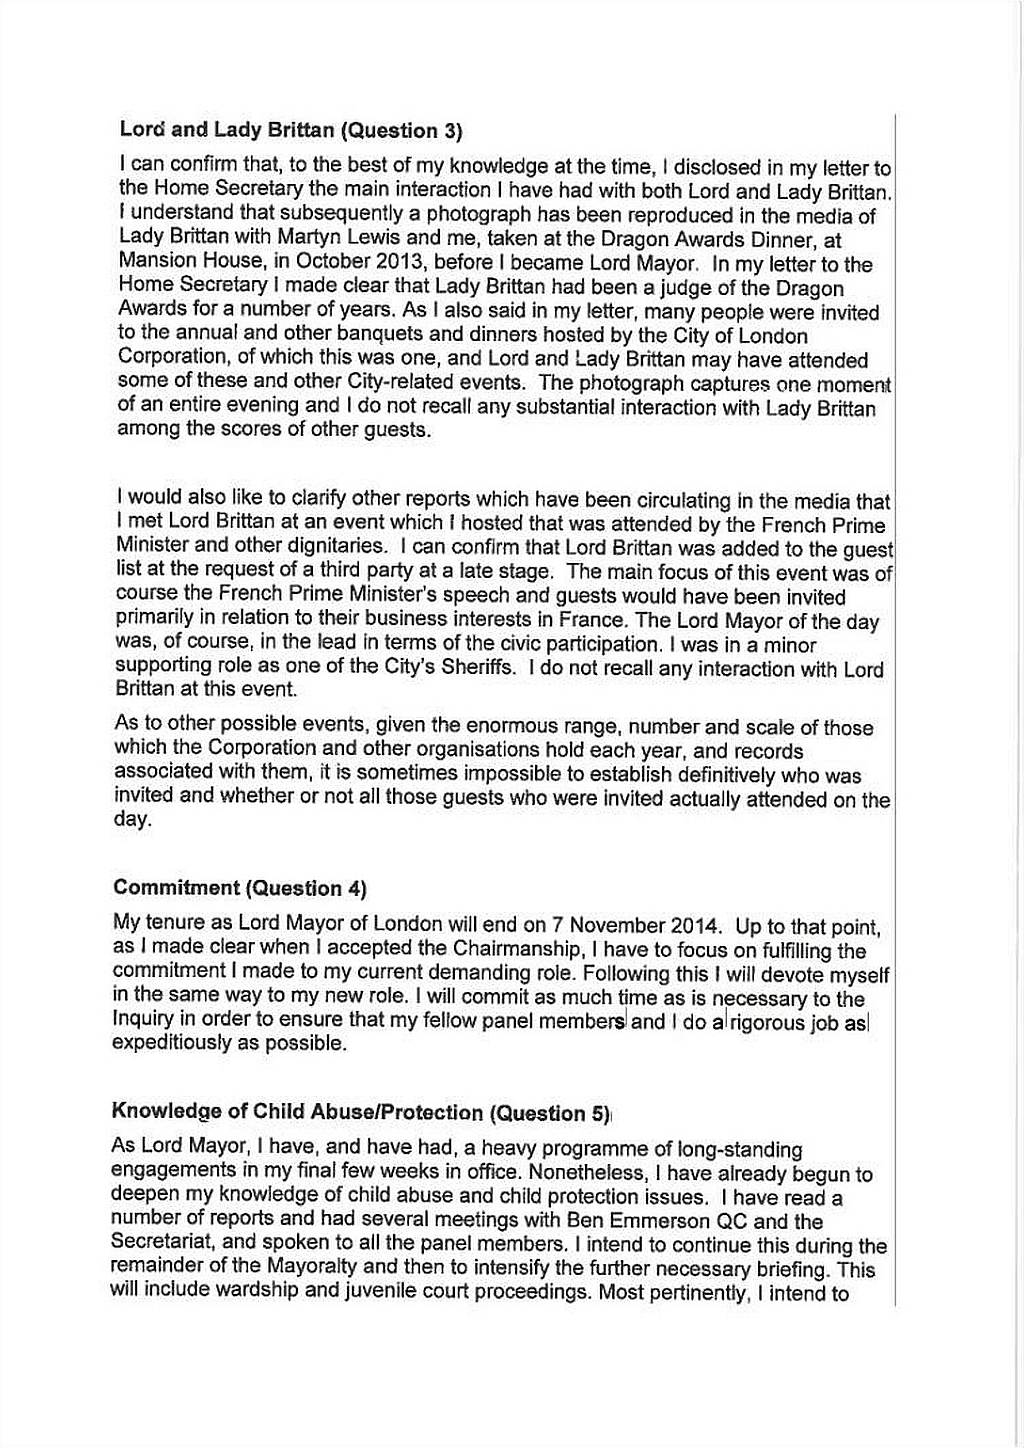 fiona woolf u2019s letter to hasc and drafts